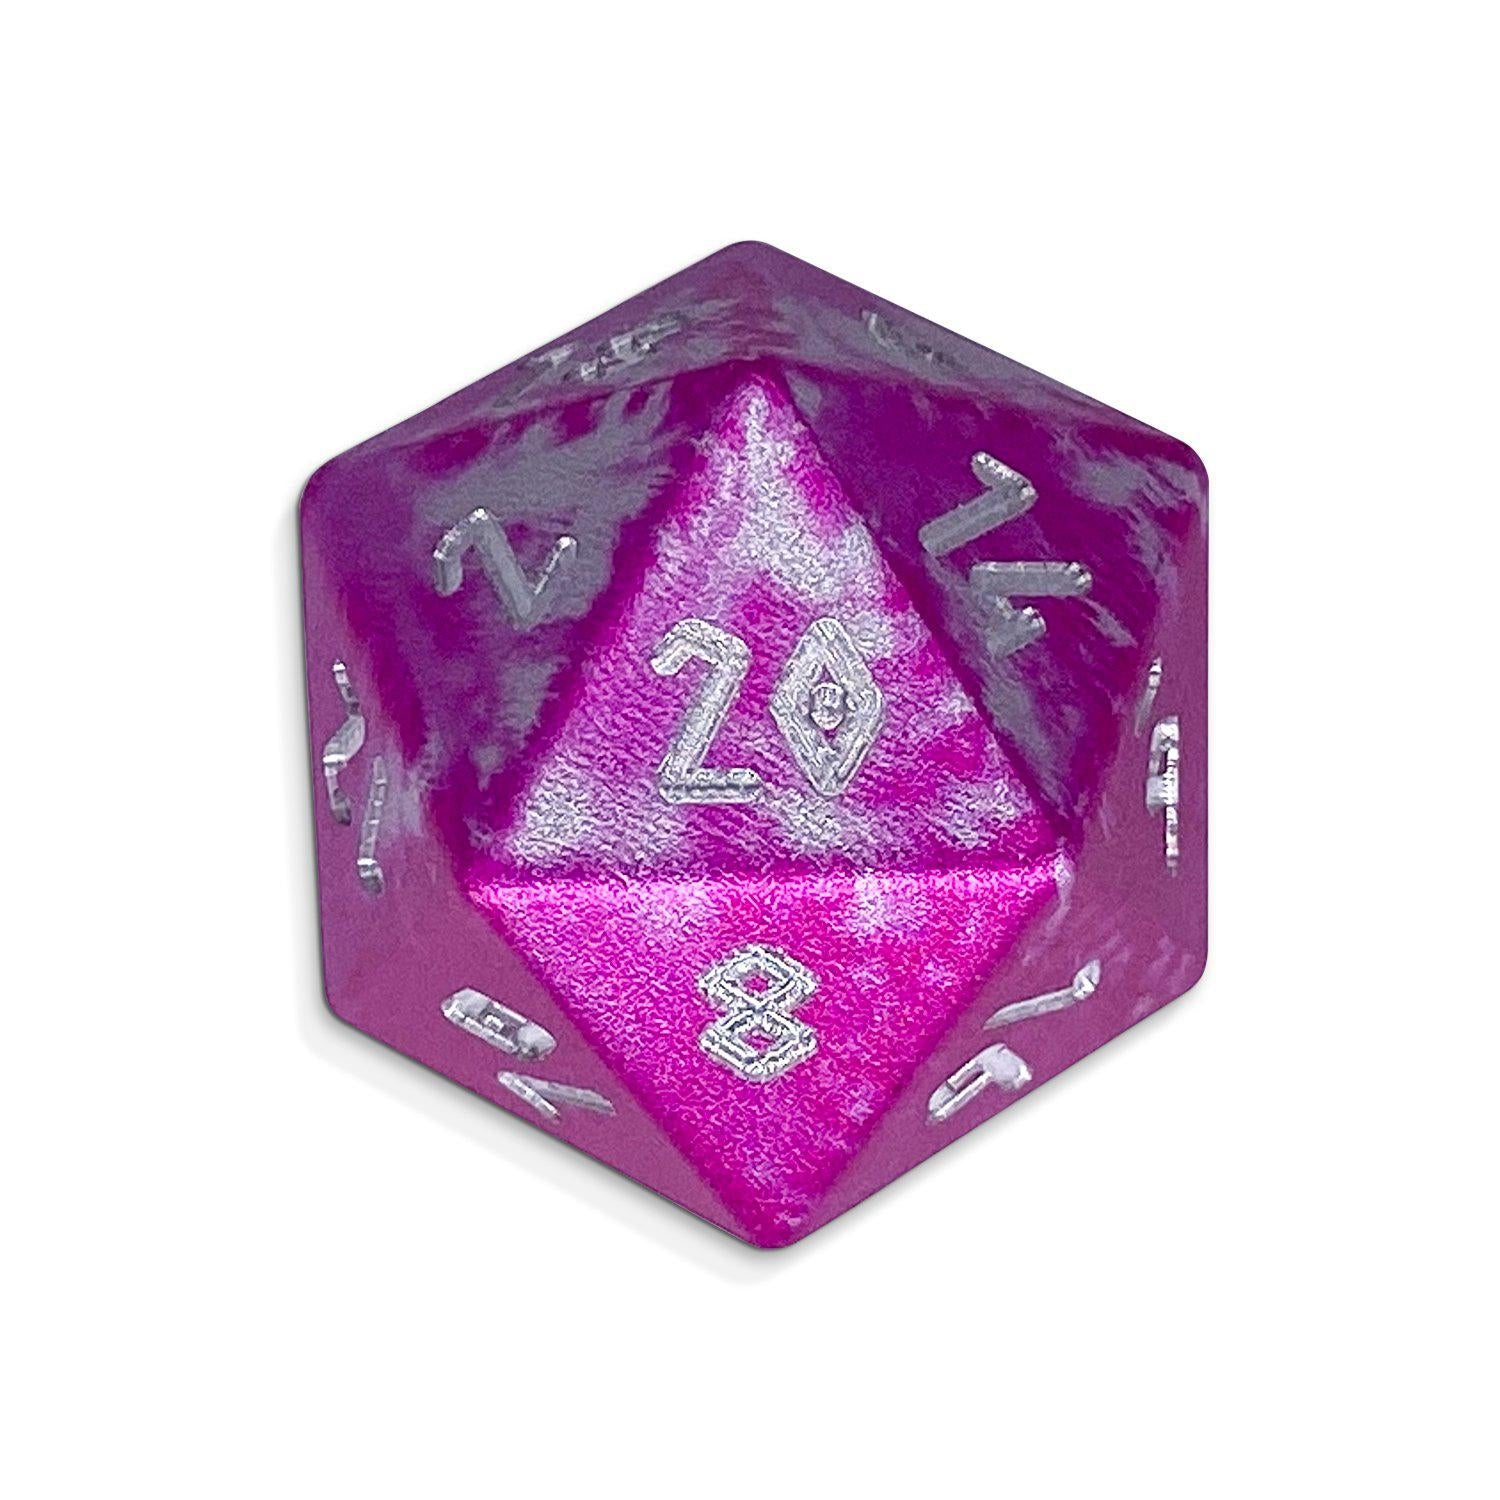 Single Wondrous Dice® D20 in Sugar Bomb by Norse Foundry® 6063 Aircraft Grade Aluminum